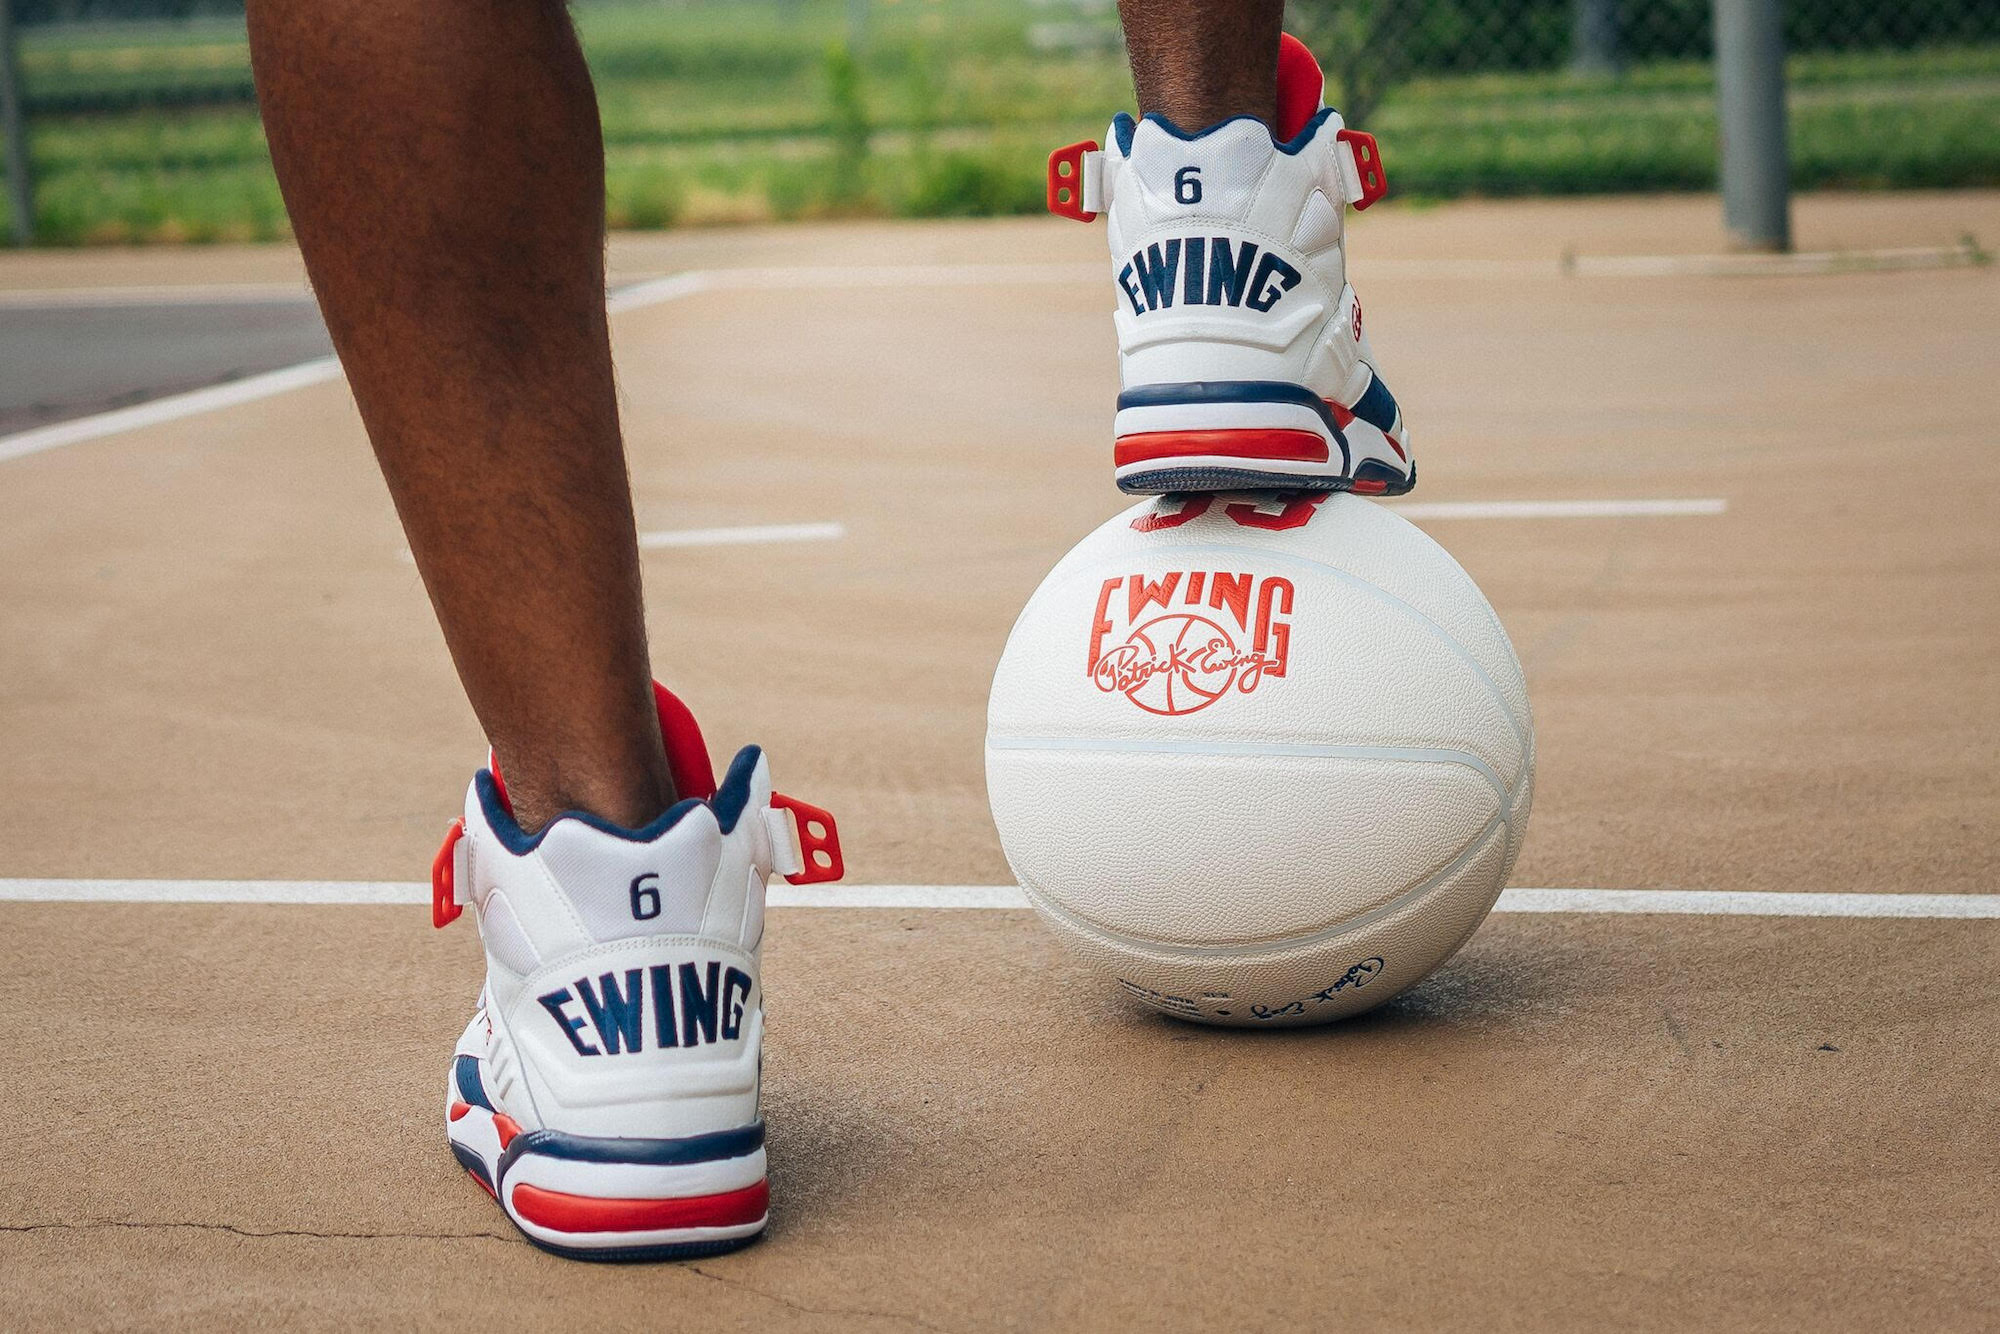 meet ewing and fab alife 1